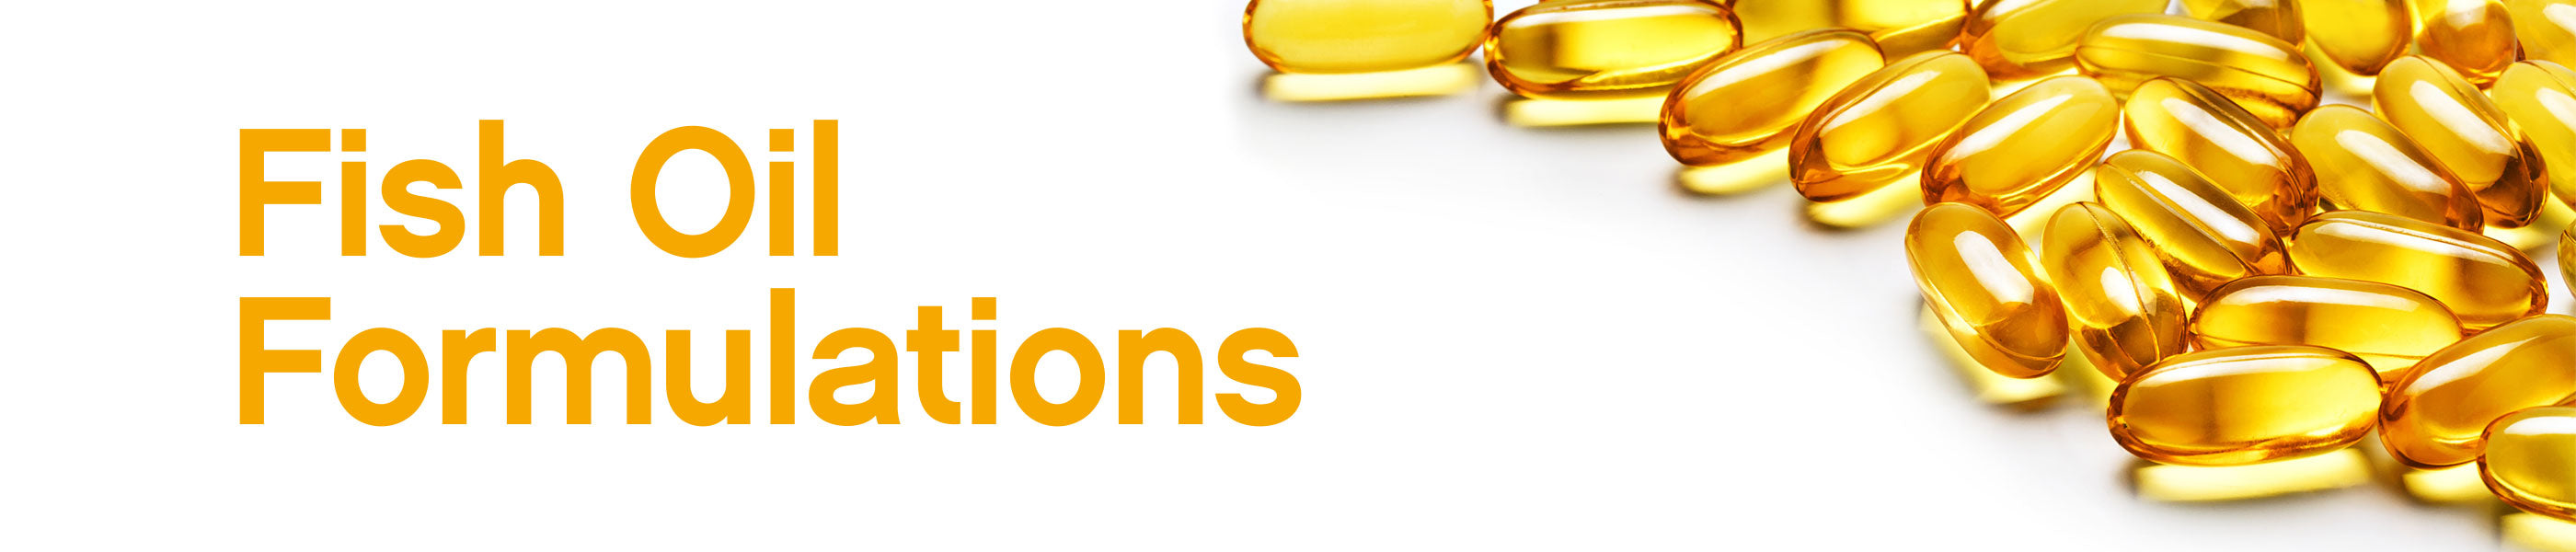 Fish Oils header image